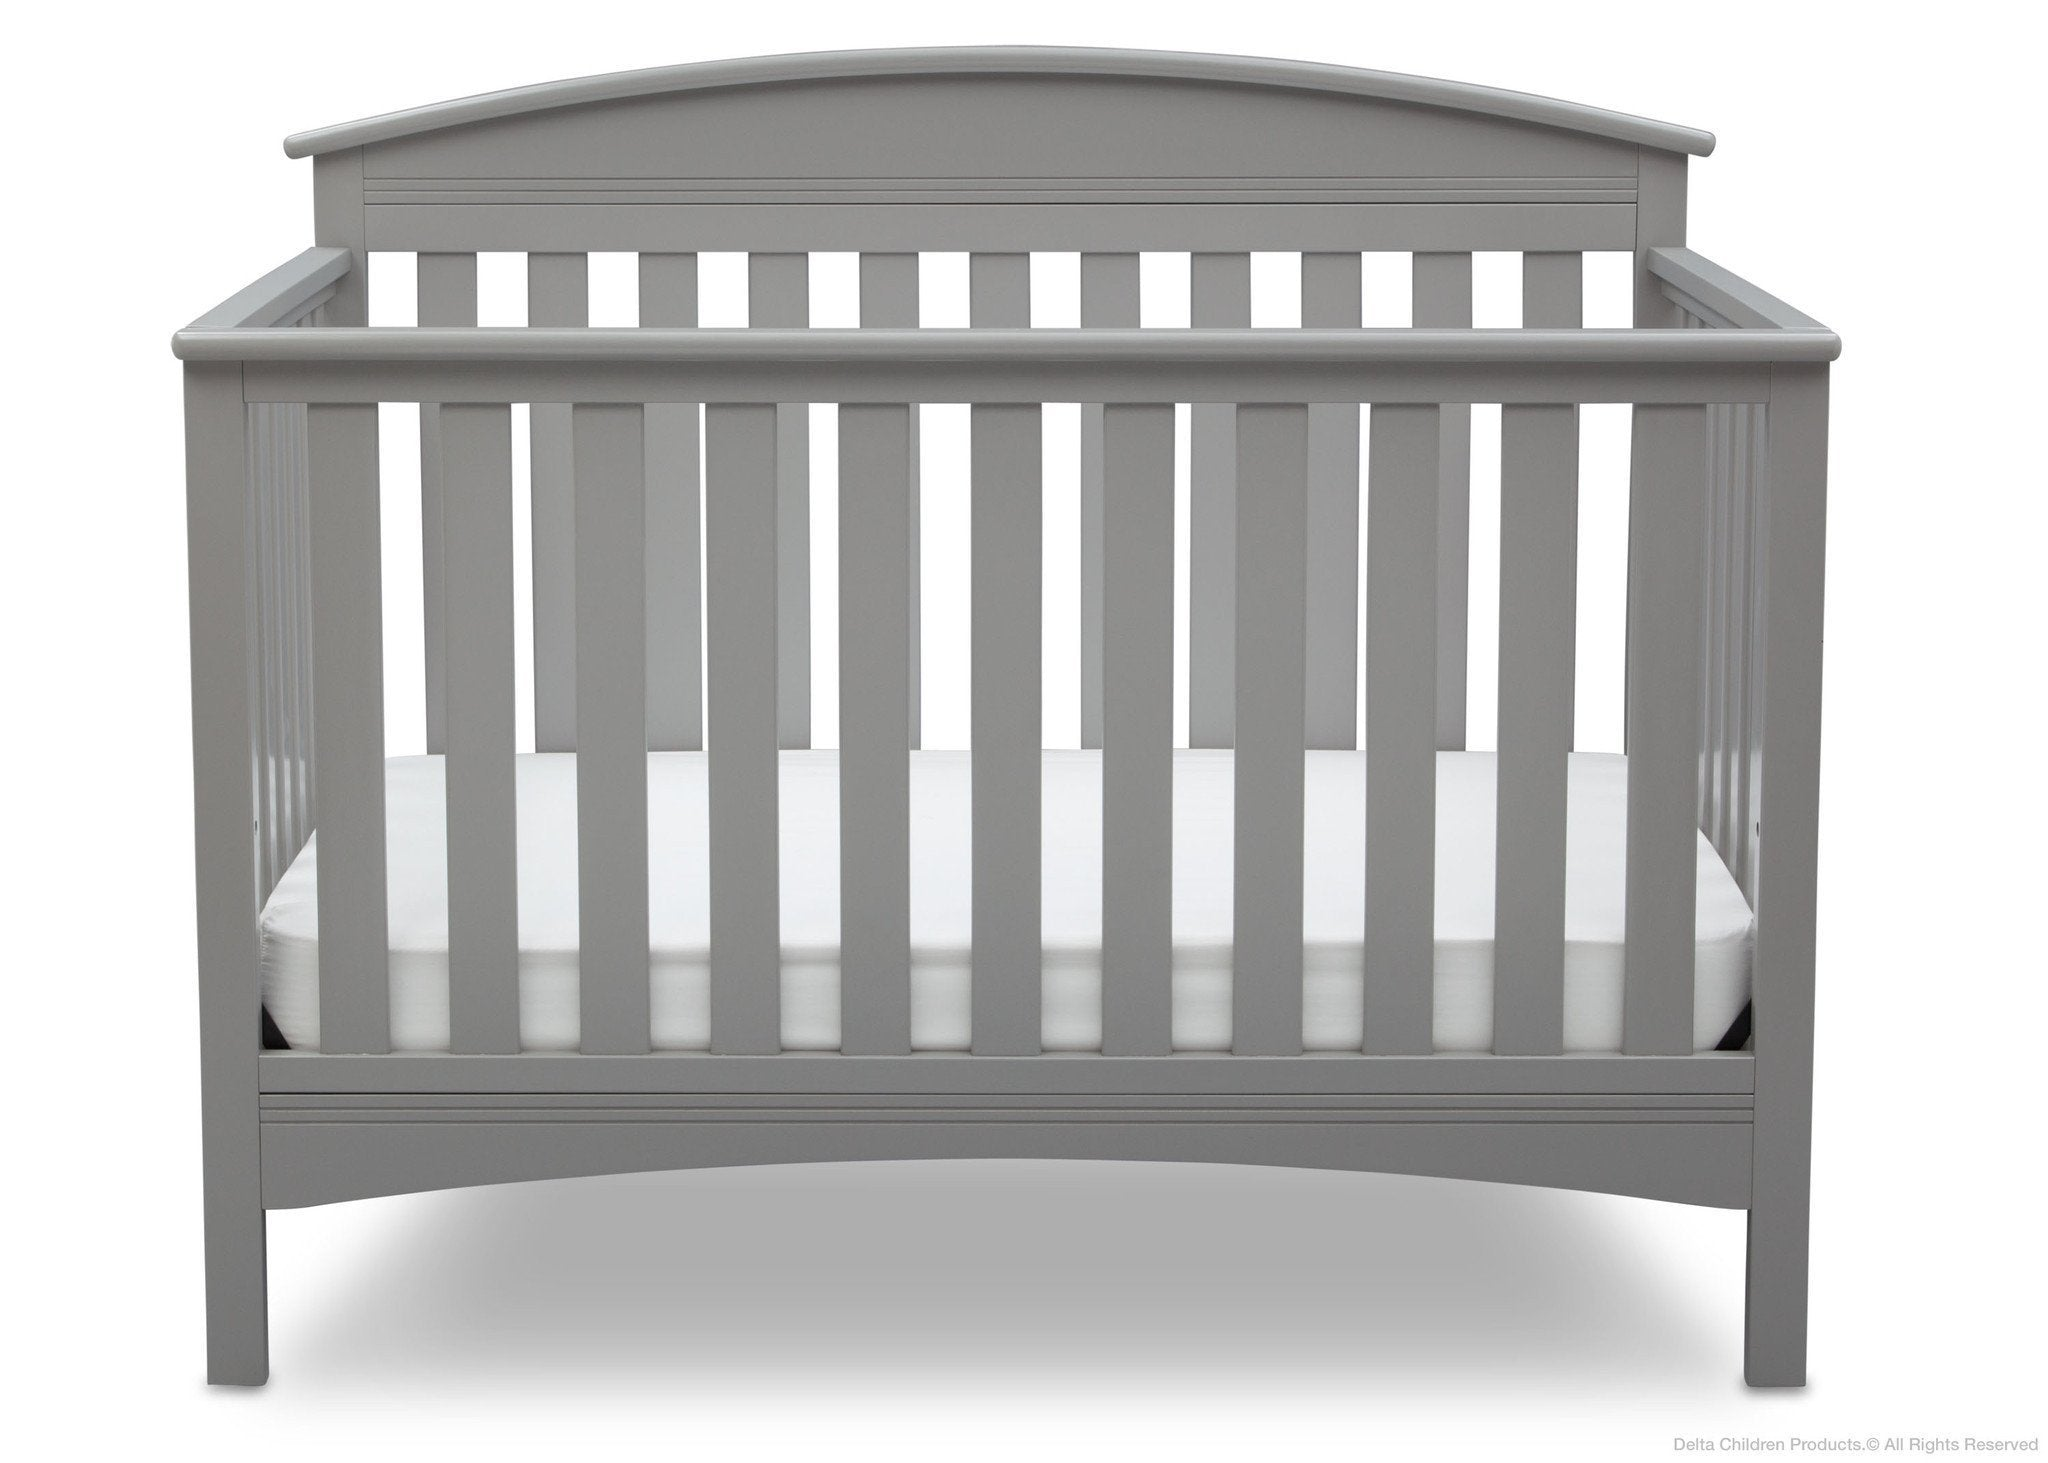 Delta Children Grey (026) Abby 4-in-1 Crib Front View a2a